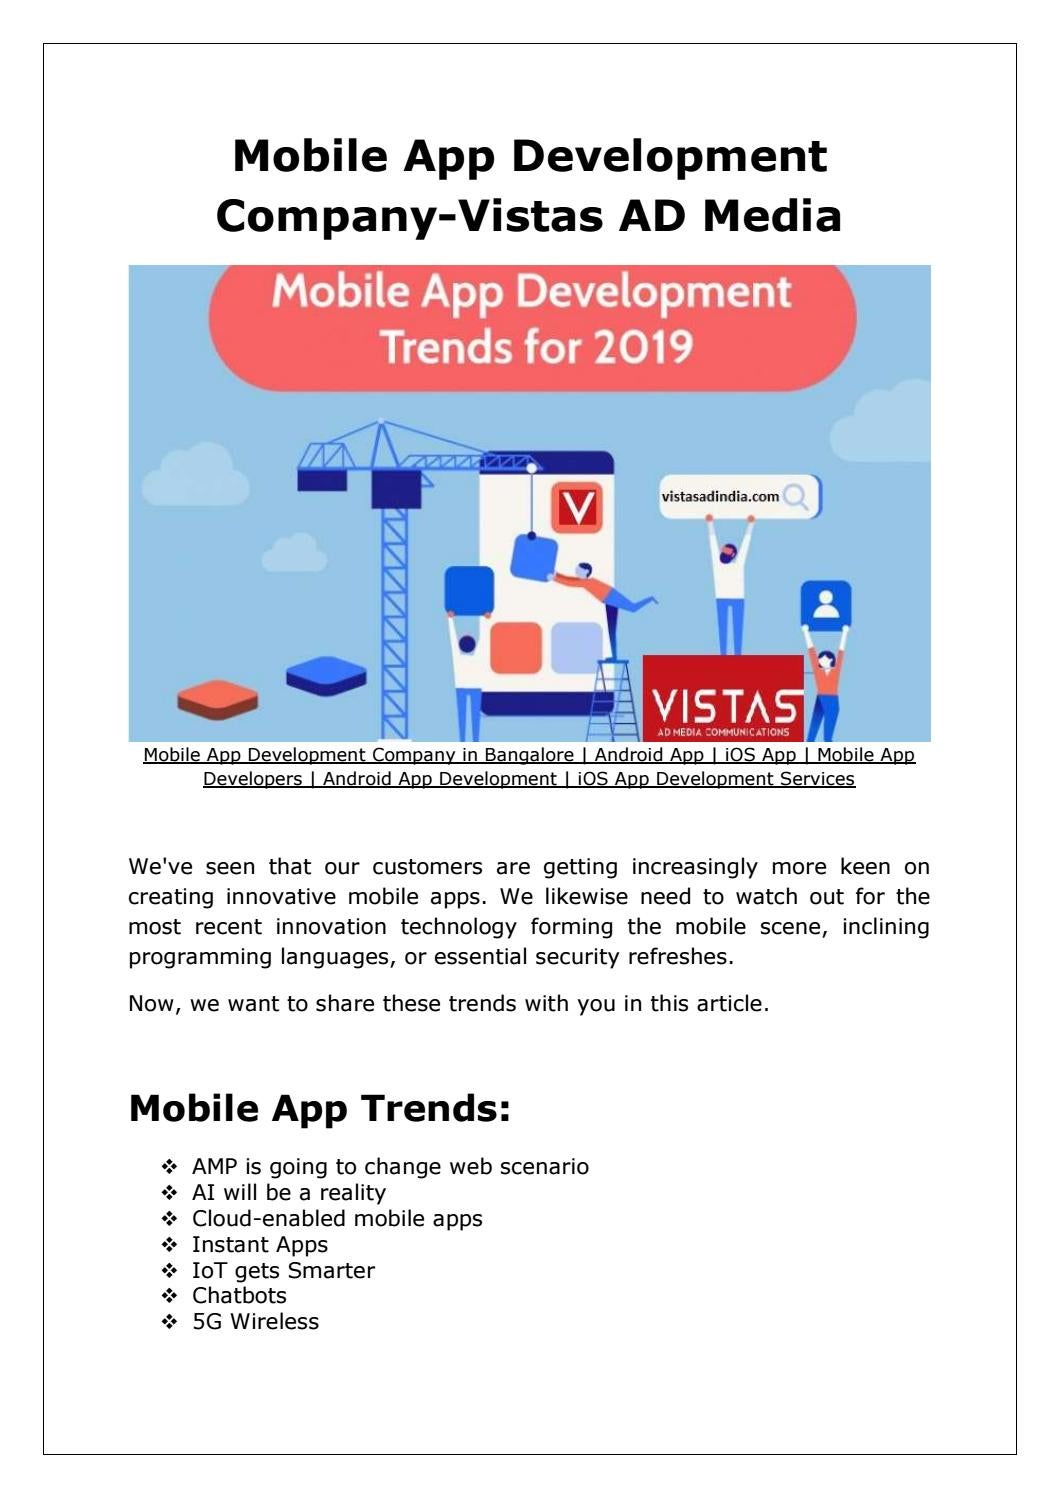 Mobile App Development Trends in 2019 by vistasadindia - issuu